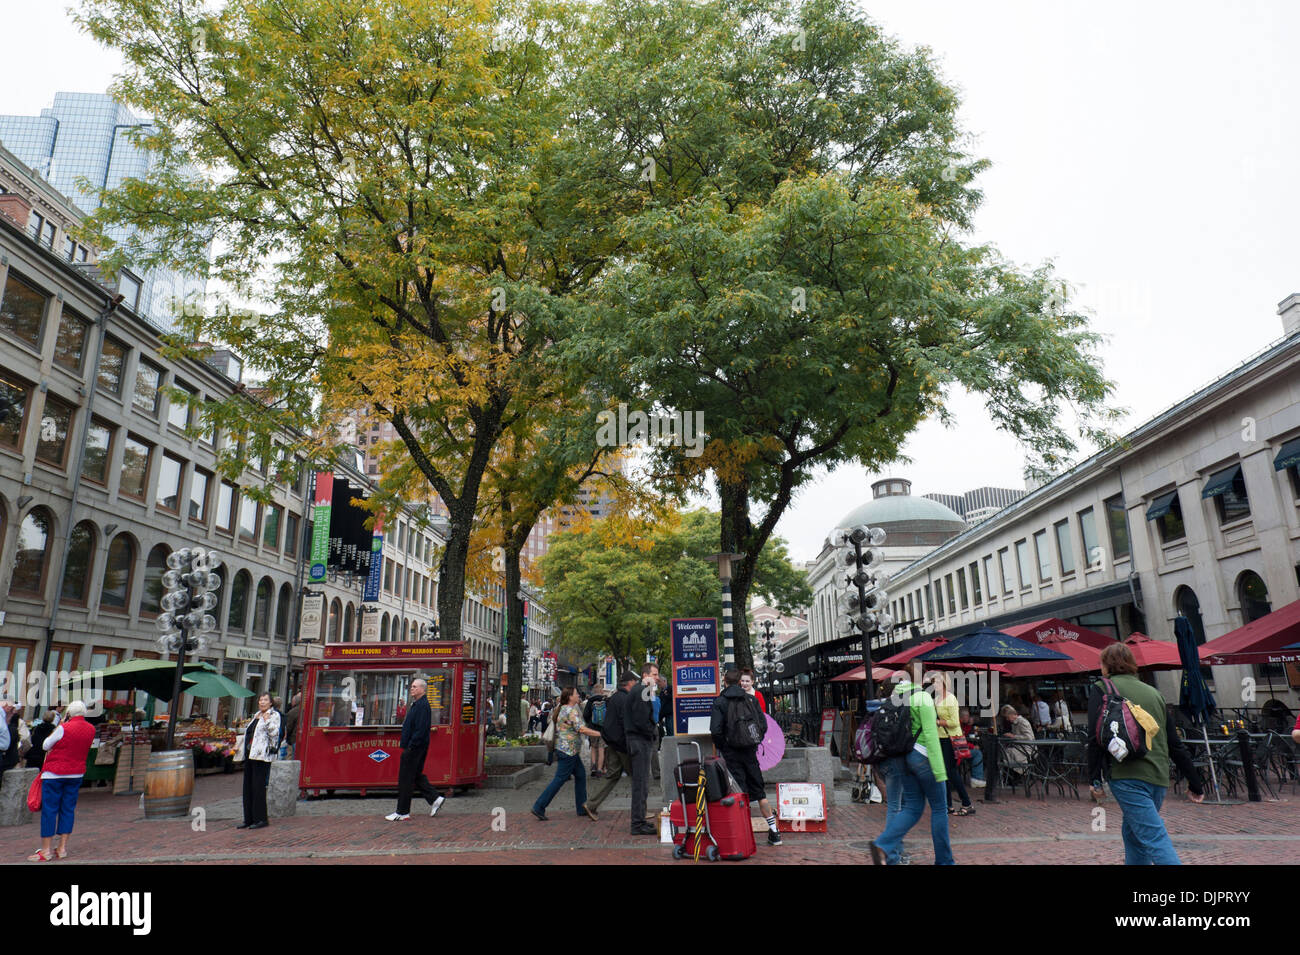 The plazas around Boston's historic Faneuil Hall and Quincy Market are filled with fast food vendors and tourism merchandise. - Stock Image